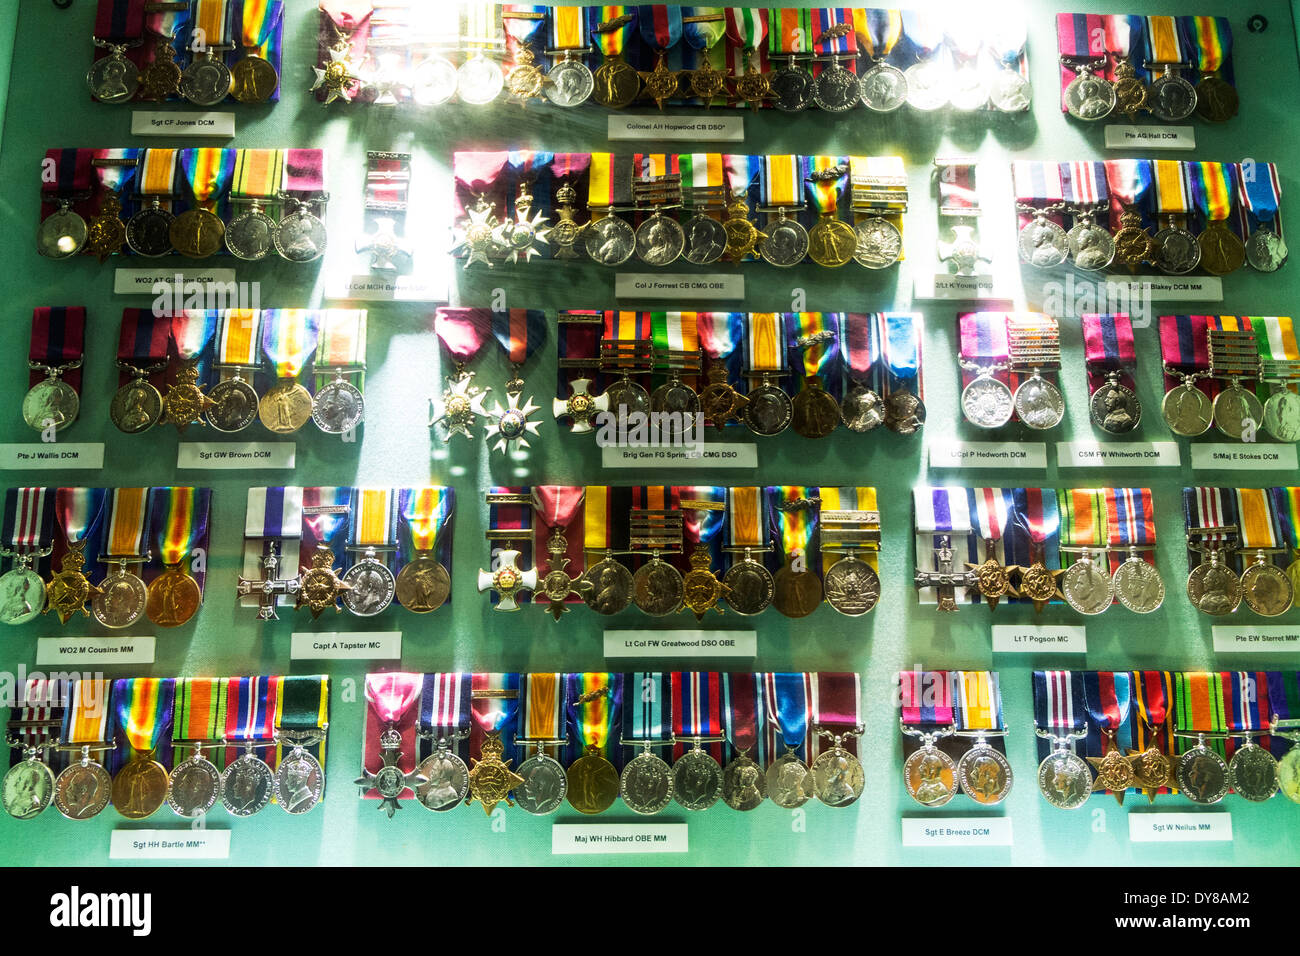 Medal Display Cabinet OBE MBE DCM DSO MC Military Cross Lincoln City  Lincolnshire UK GB England